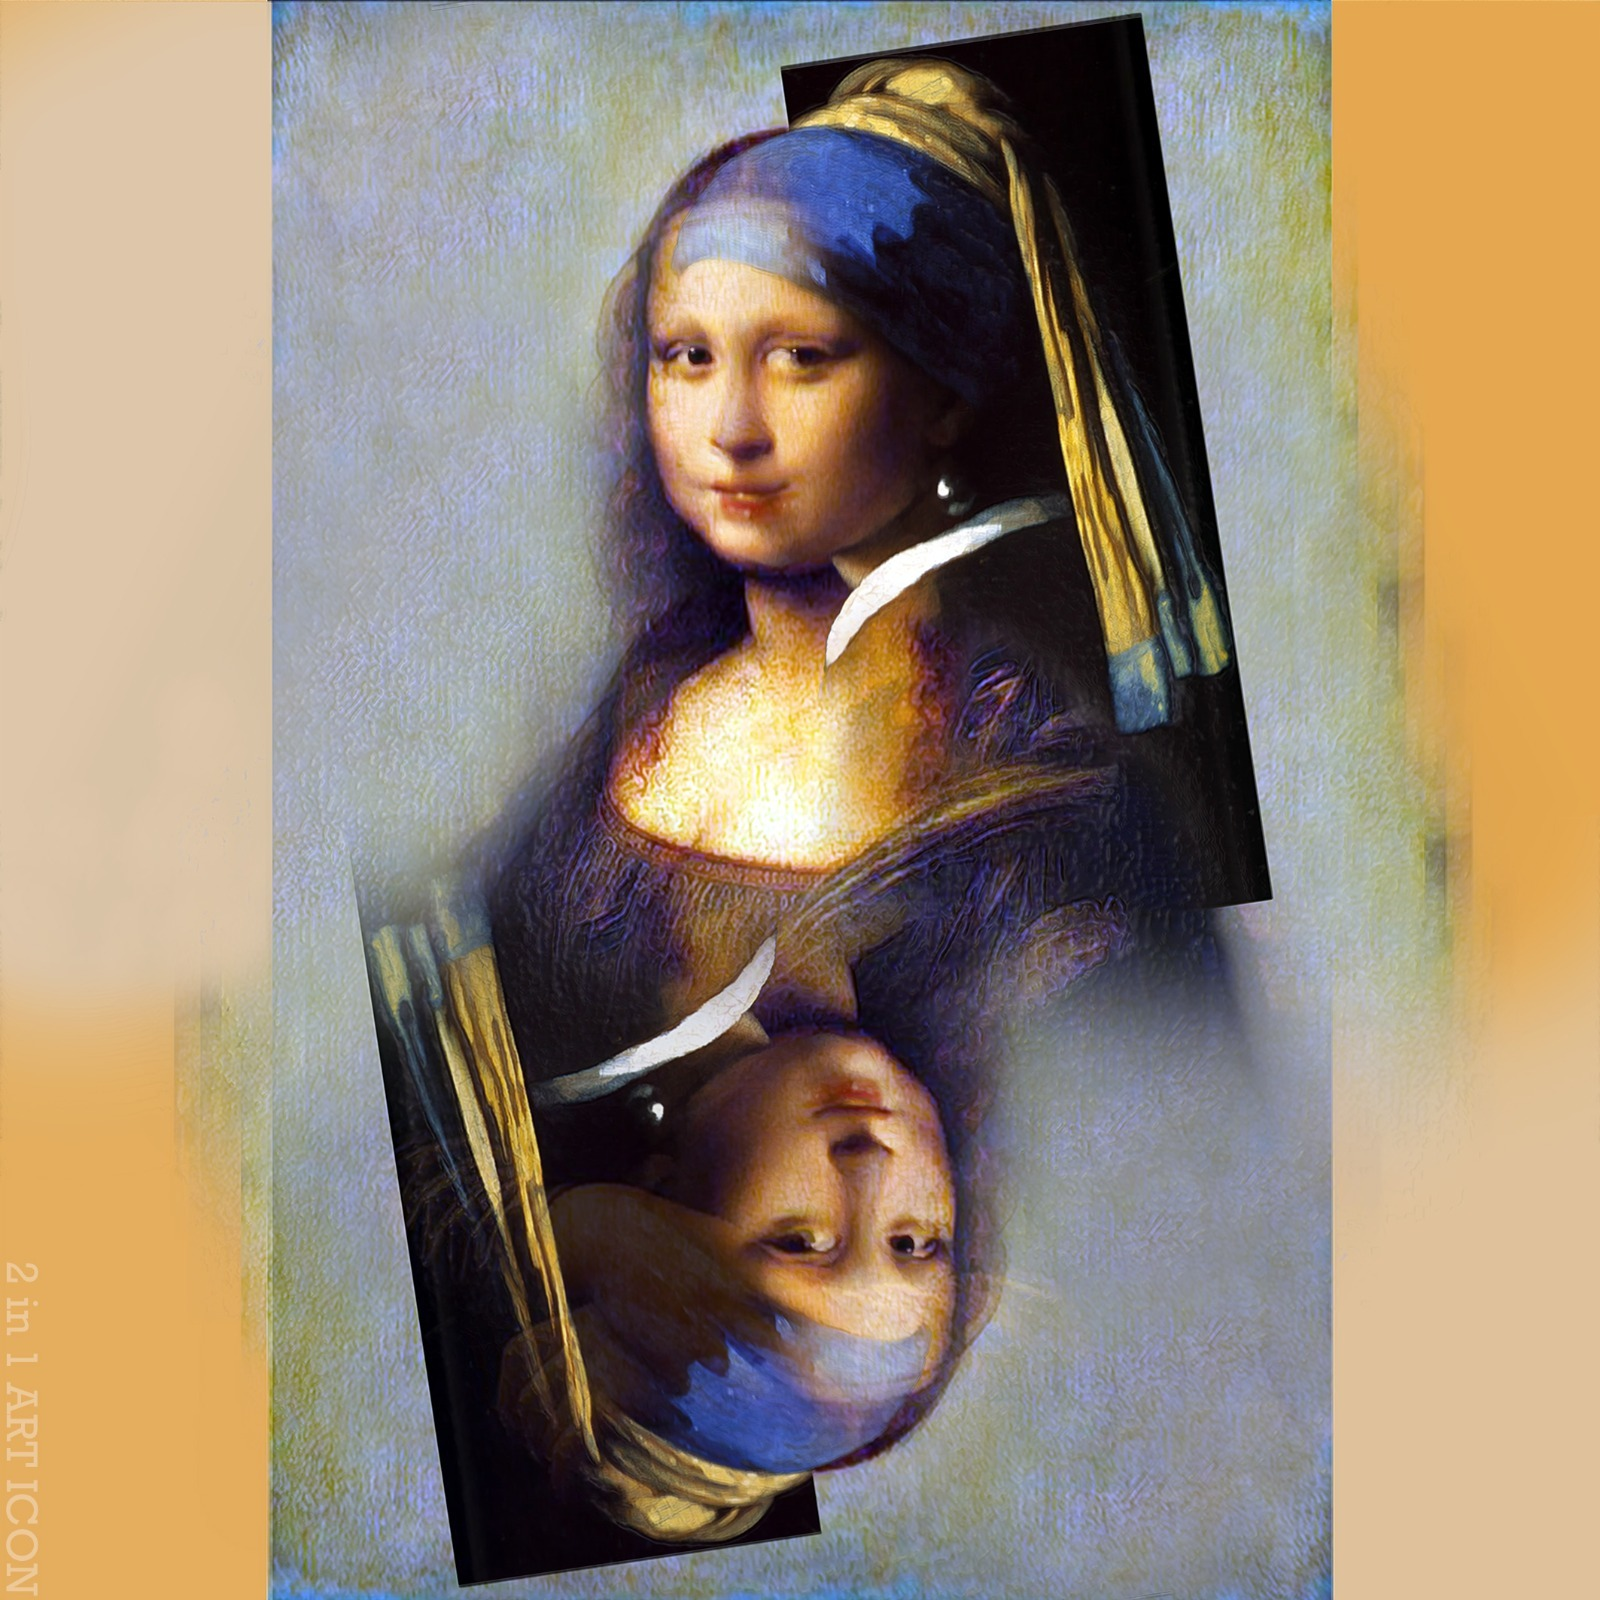 2 in 1 Art Icon by Gordon Coldwell